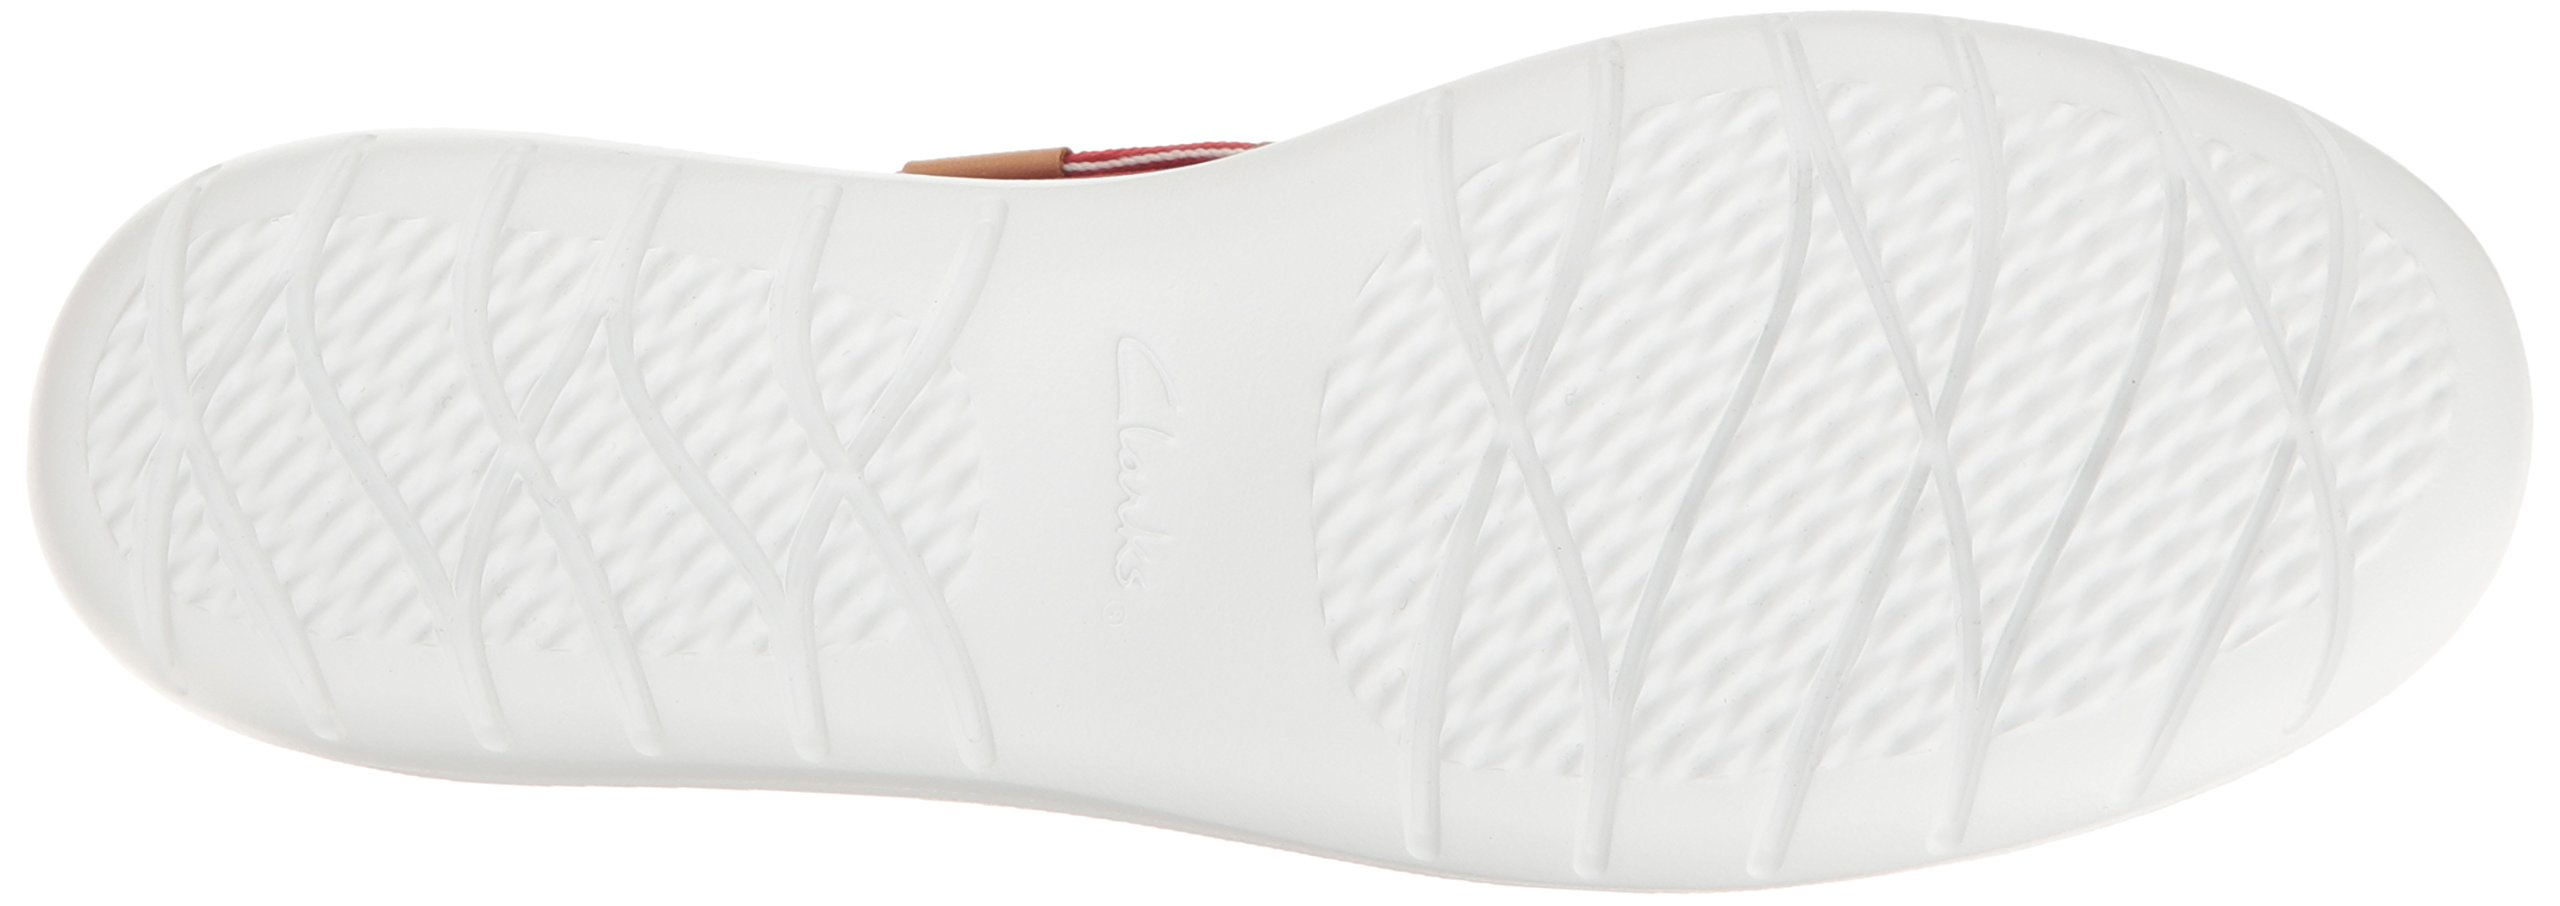 CLARKS Women's Jocolin Vista Boat Shoe, Red Perforated Microfiber, 12 B(M) US by CLARKS (Image #3)